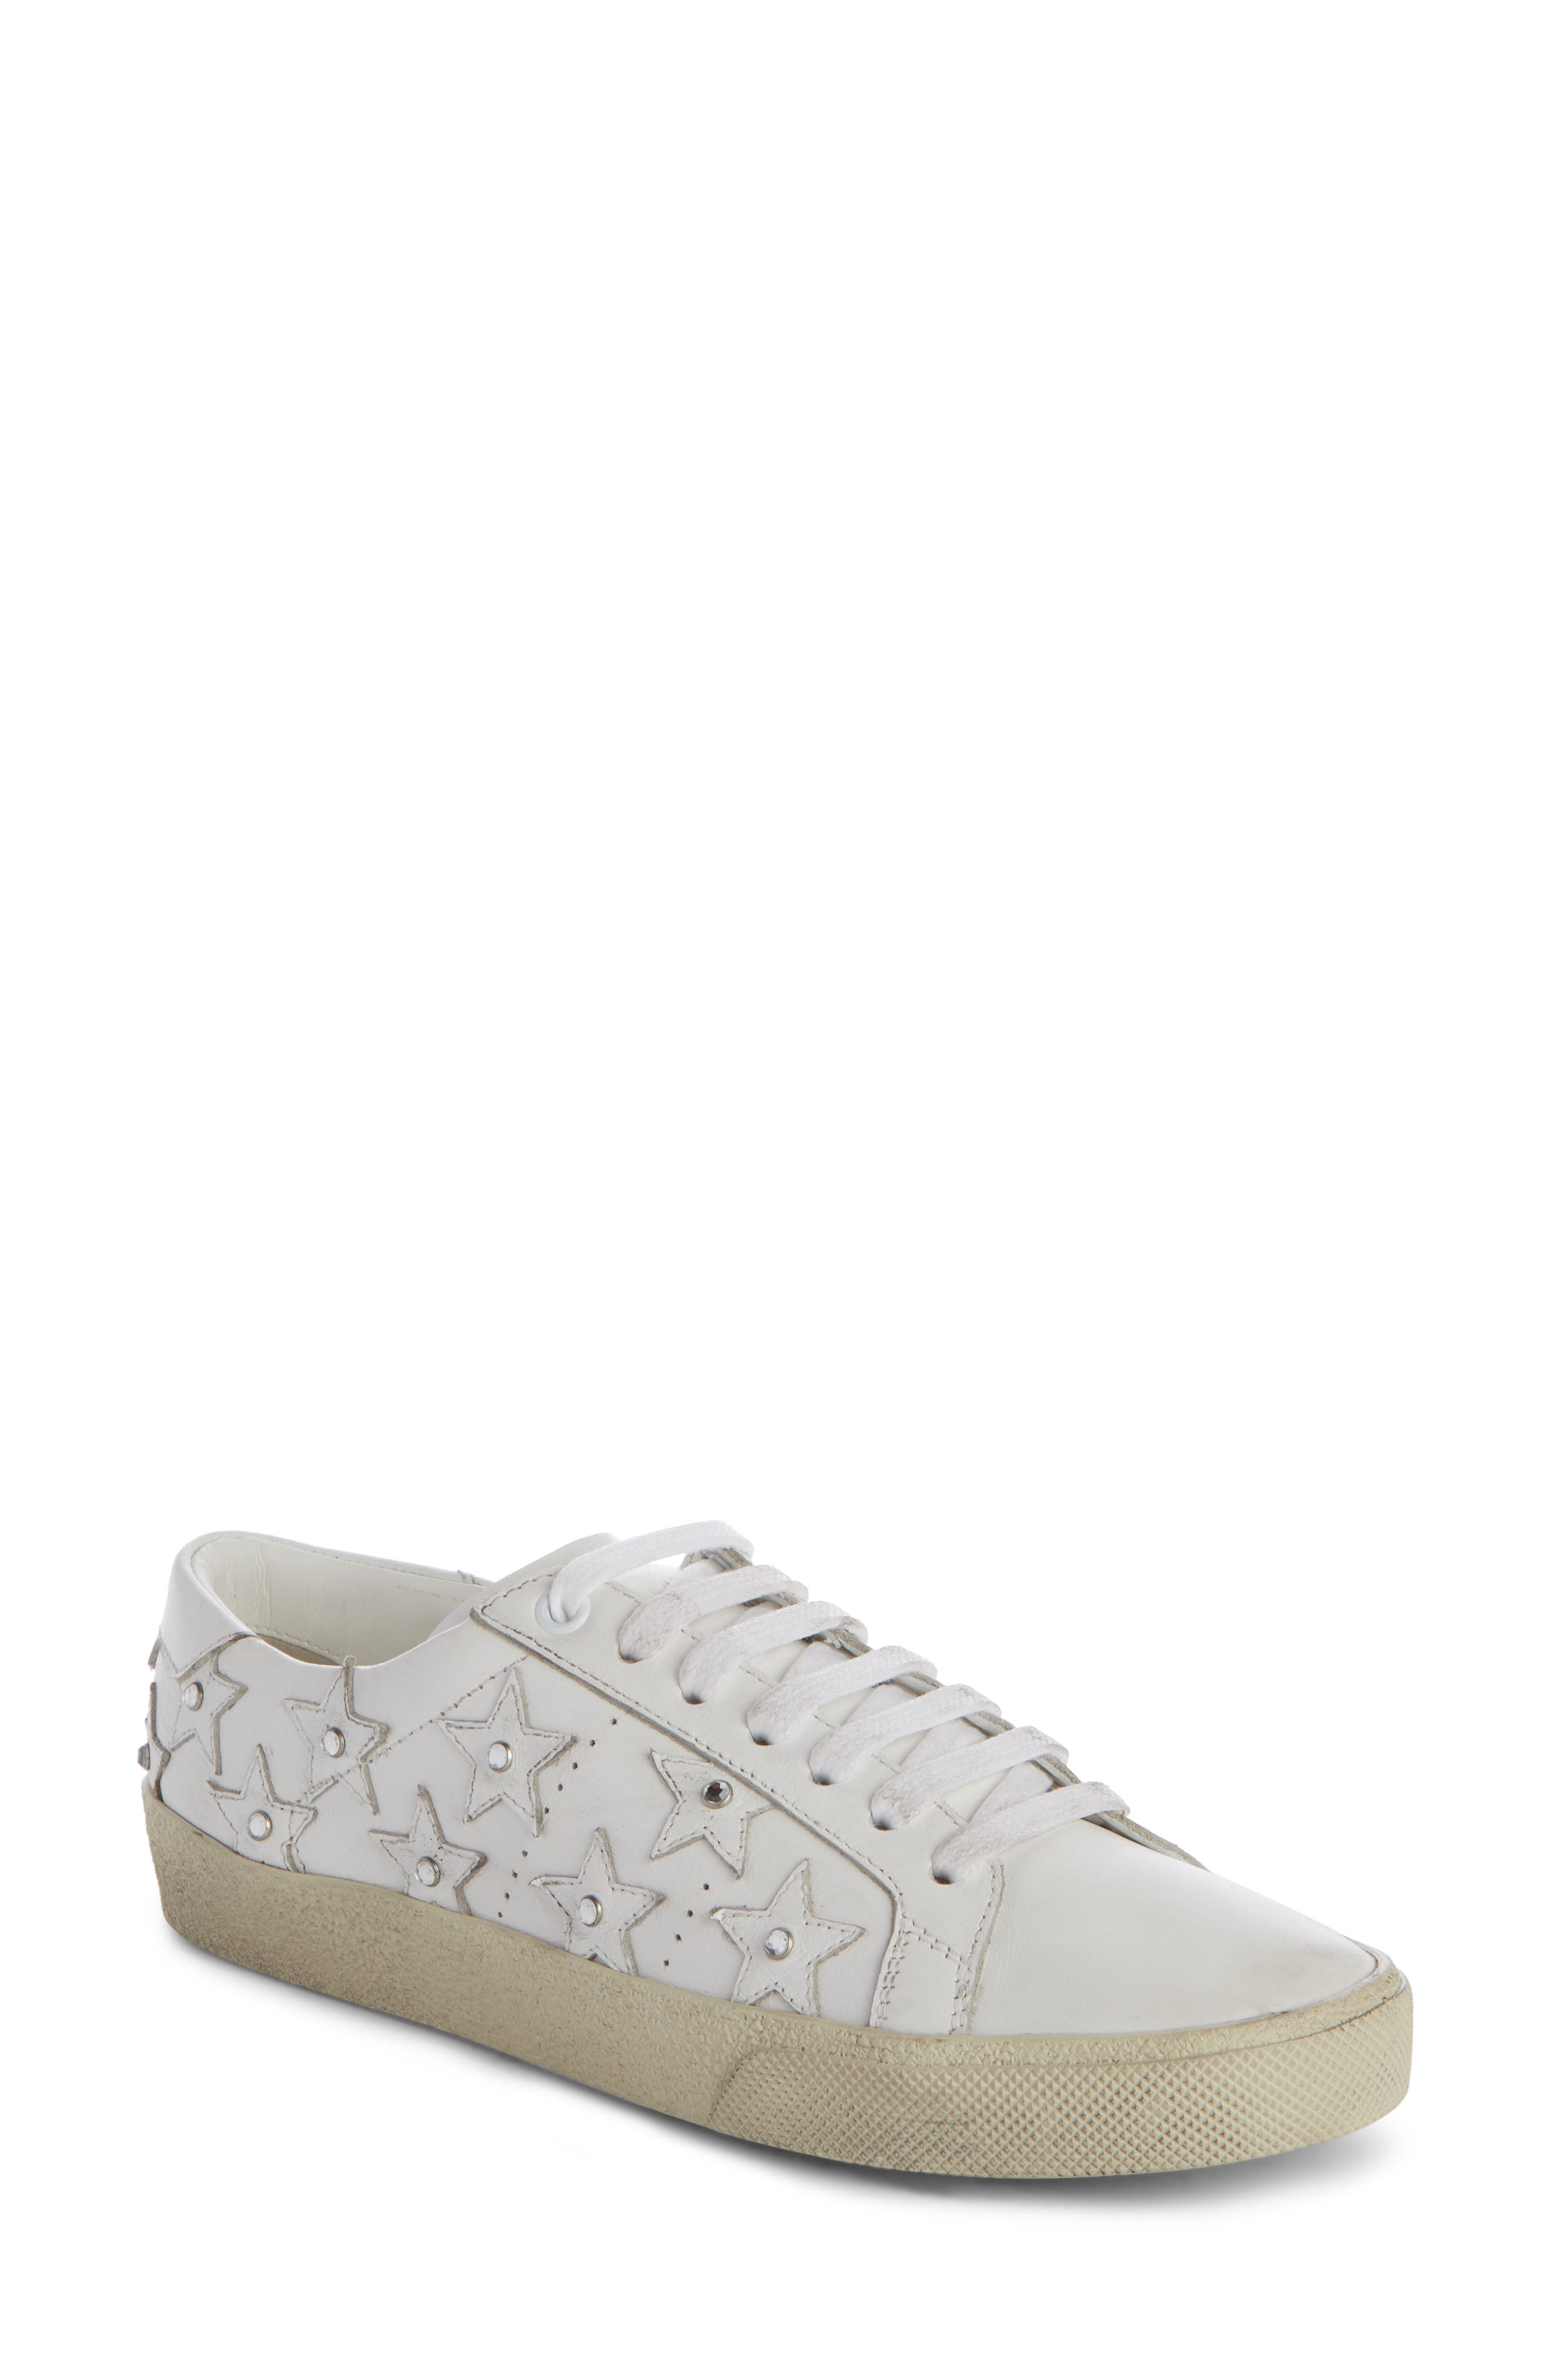 Alternate Image 1 Selected - Saint Laurent Court Classic Embellished Star Sneaker (Women)